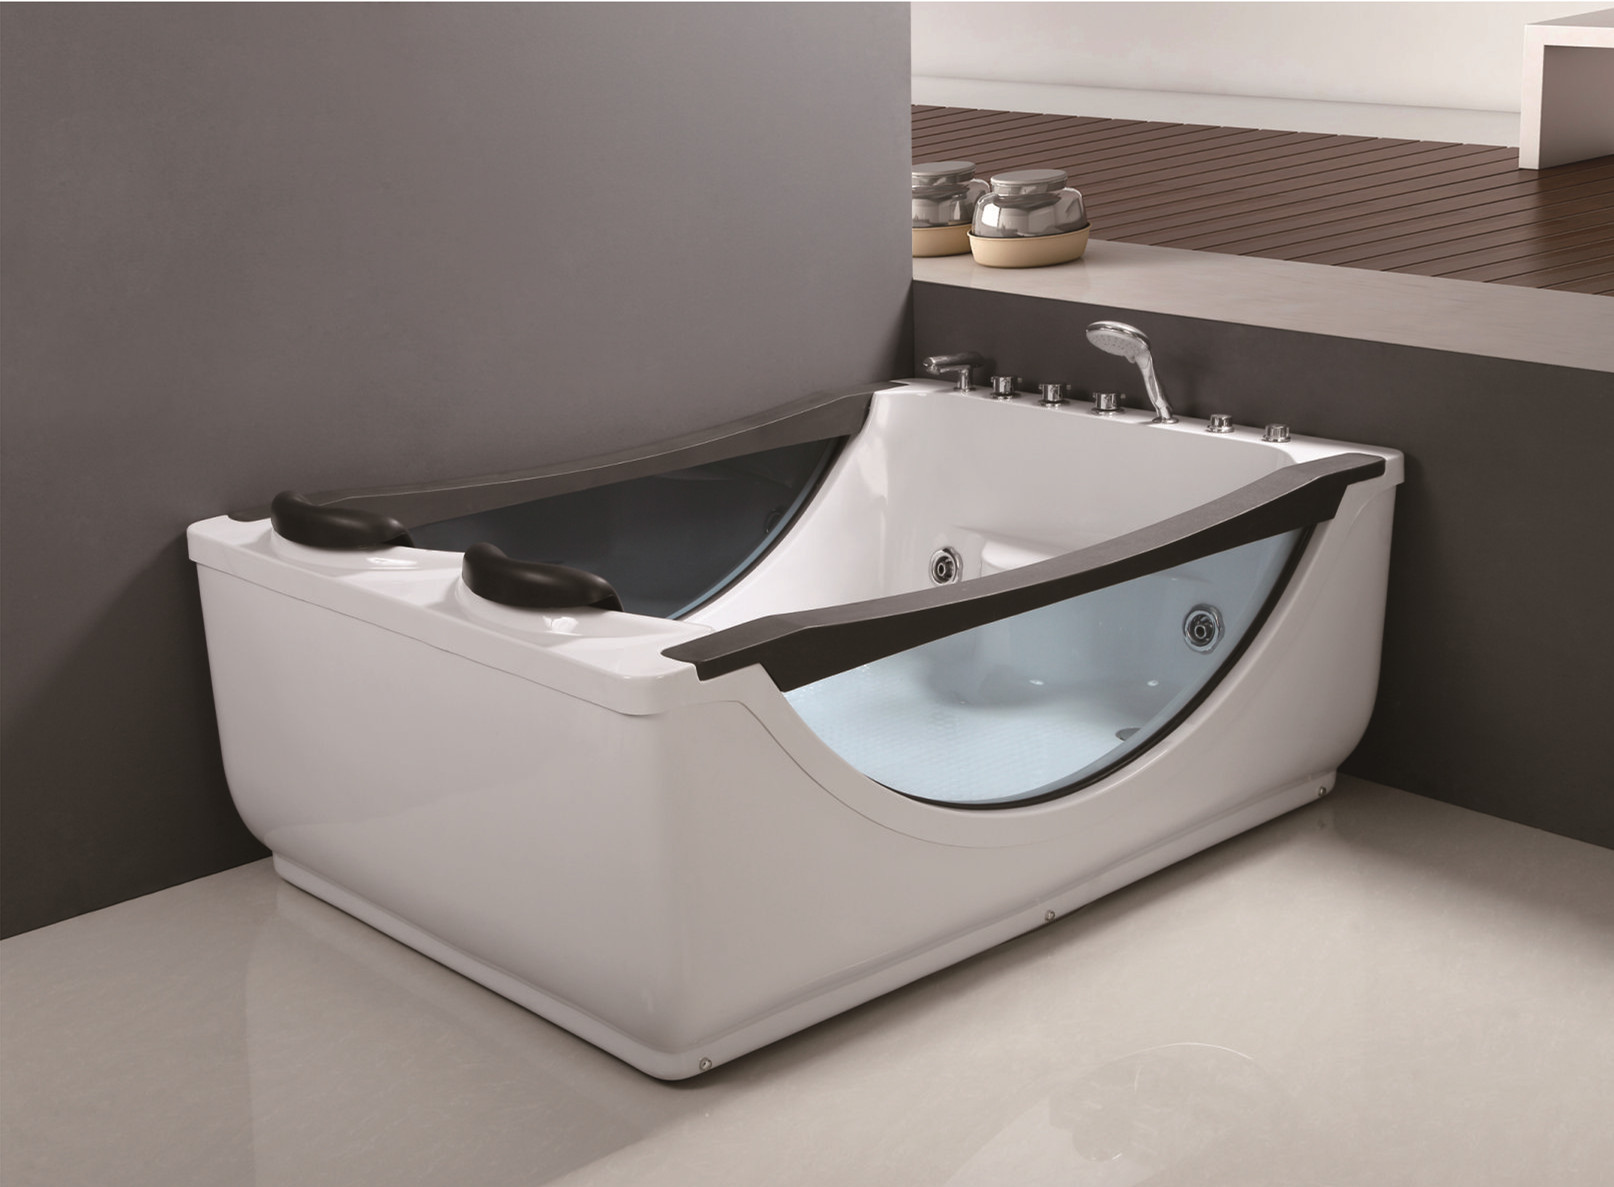 C-040 C-046 Luxury White Black ABS Glass Hot Tub Whirlpool Massage Jetted Bathroom Bathtub with Cheap Price for Sale.jpg